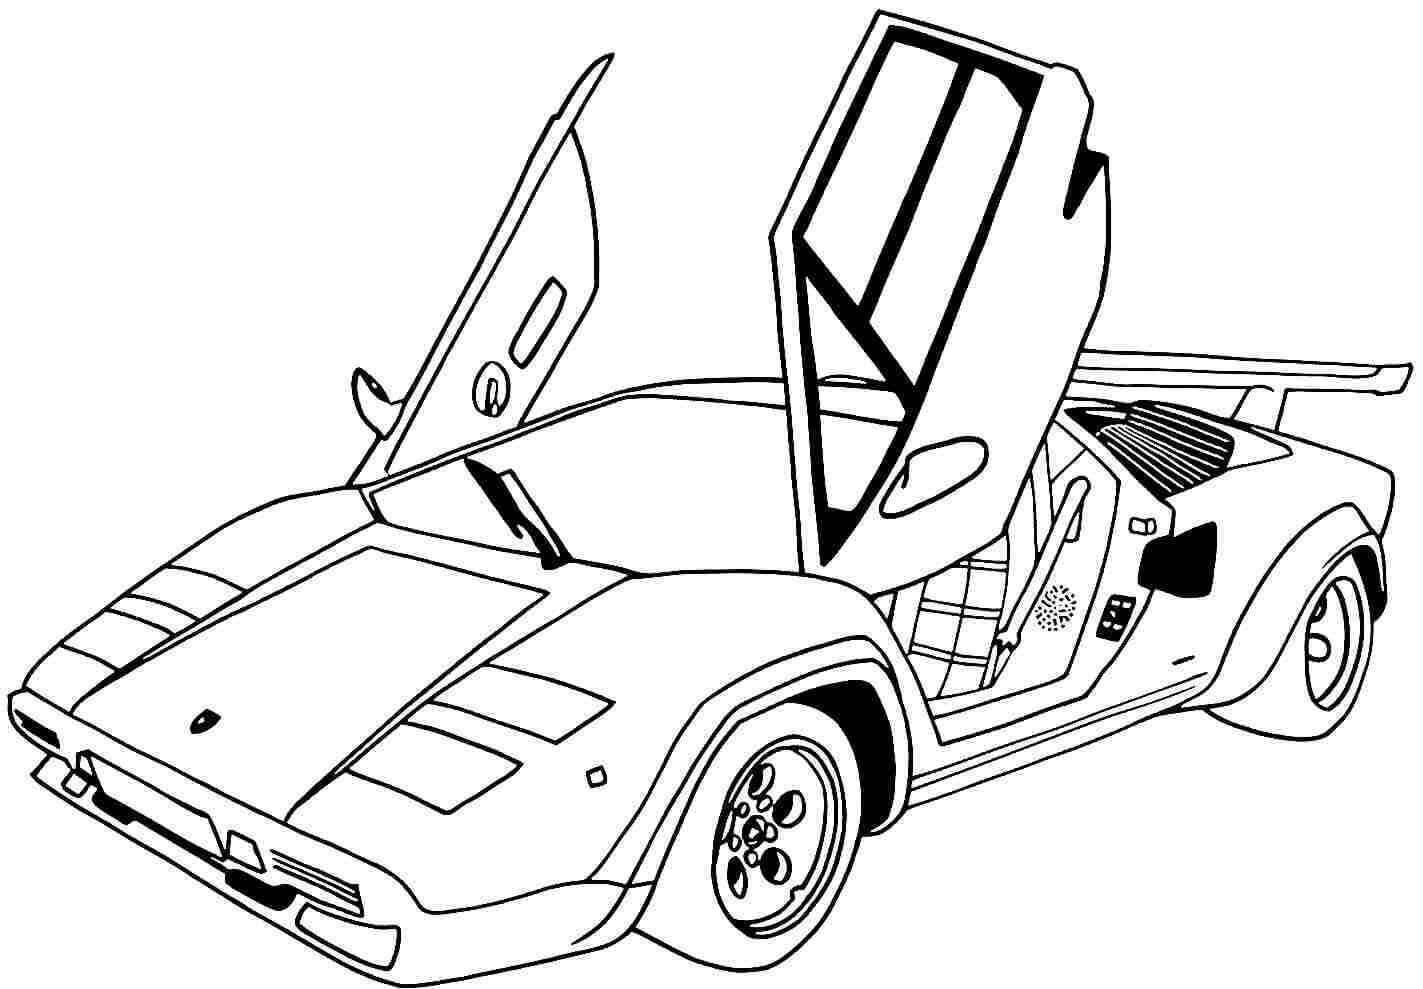 coloring pages car car coloring pages best coloring pages for kids coloring car pages